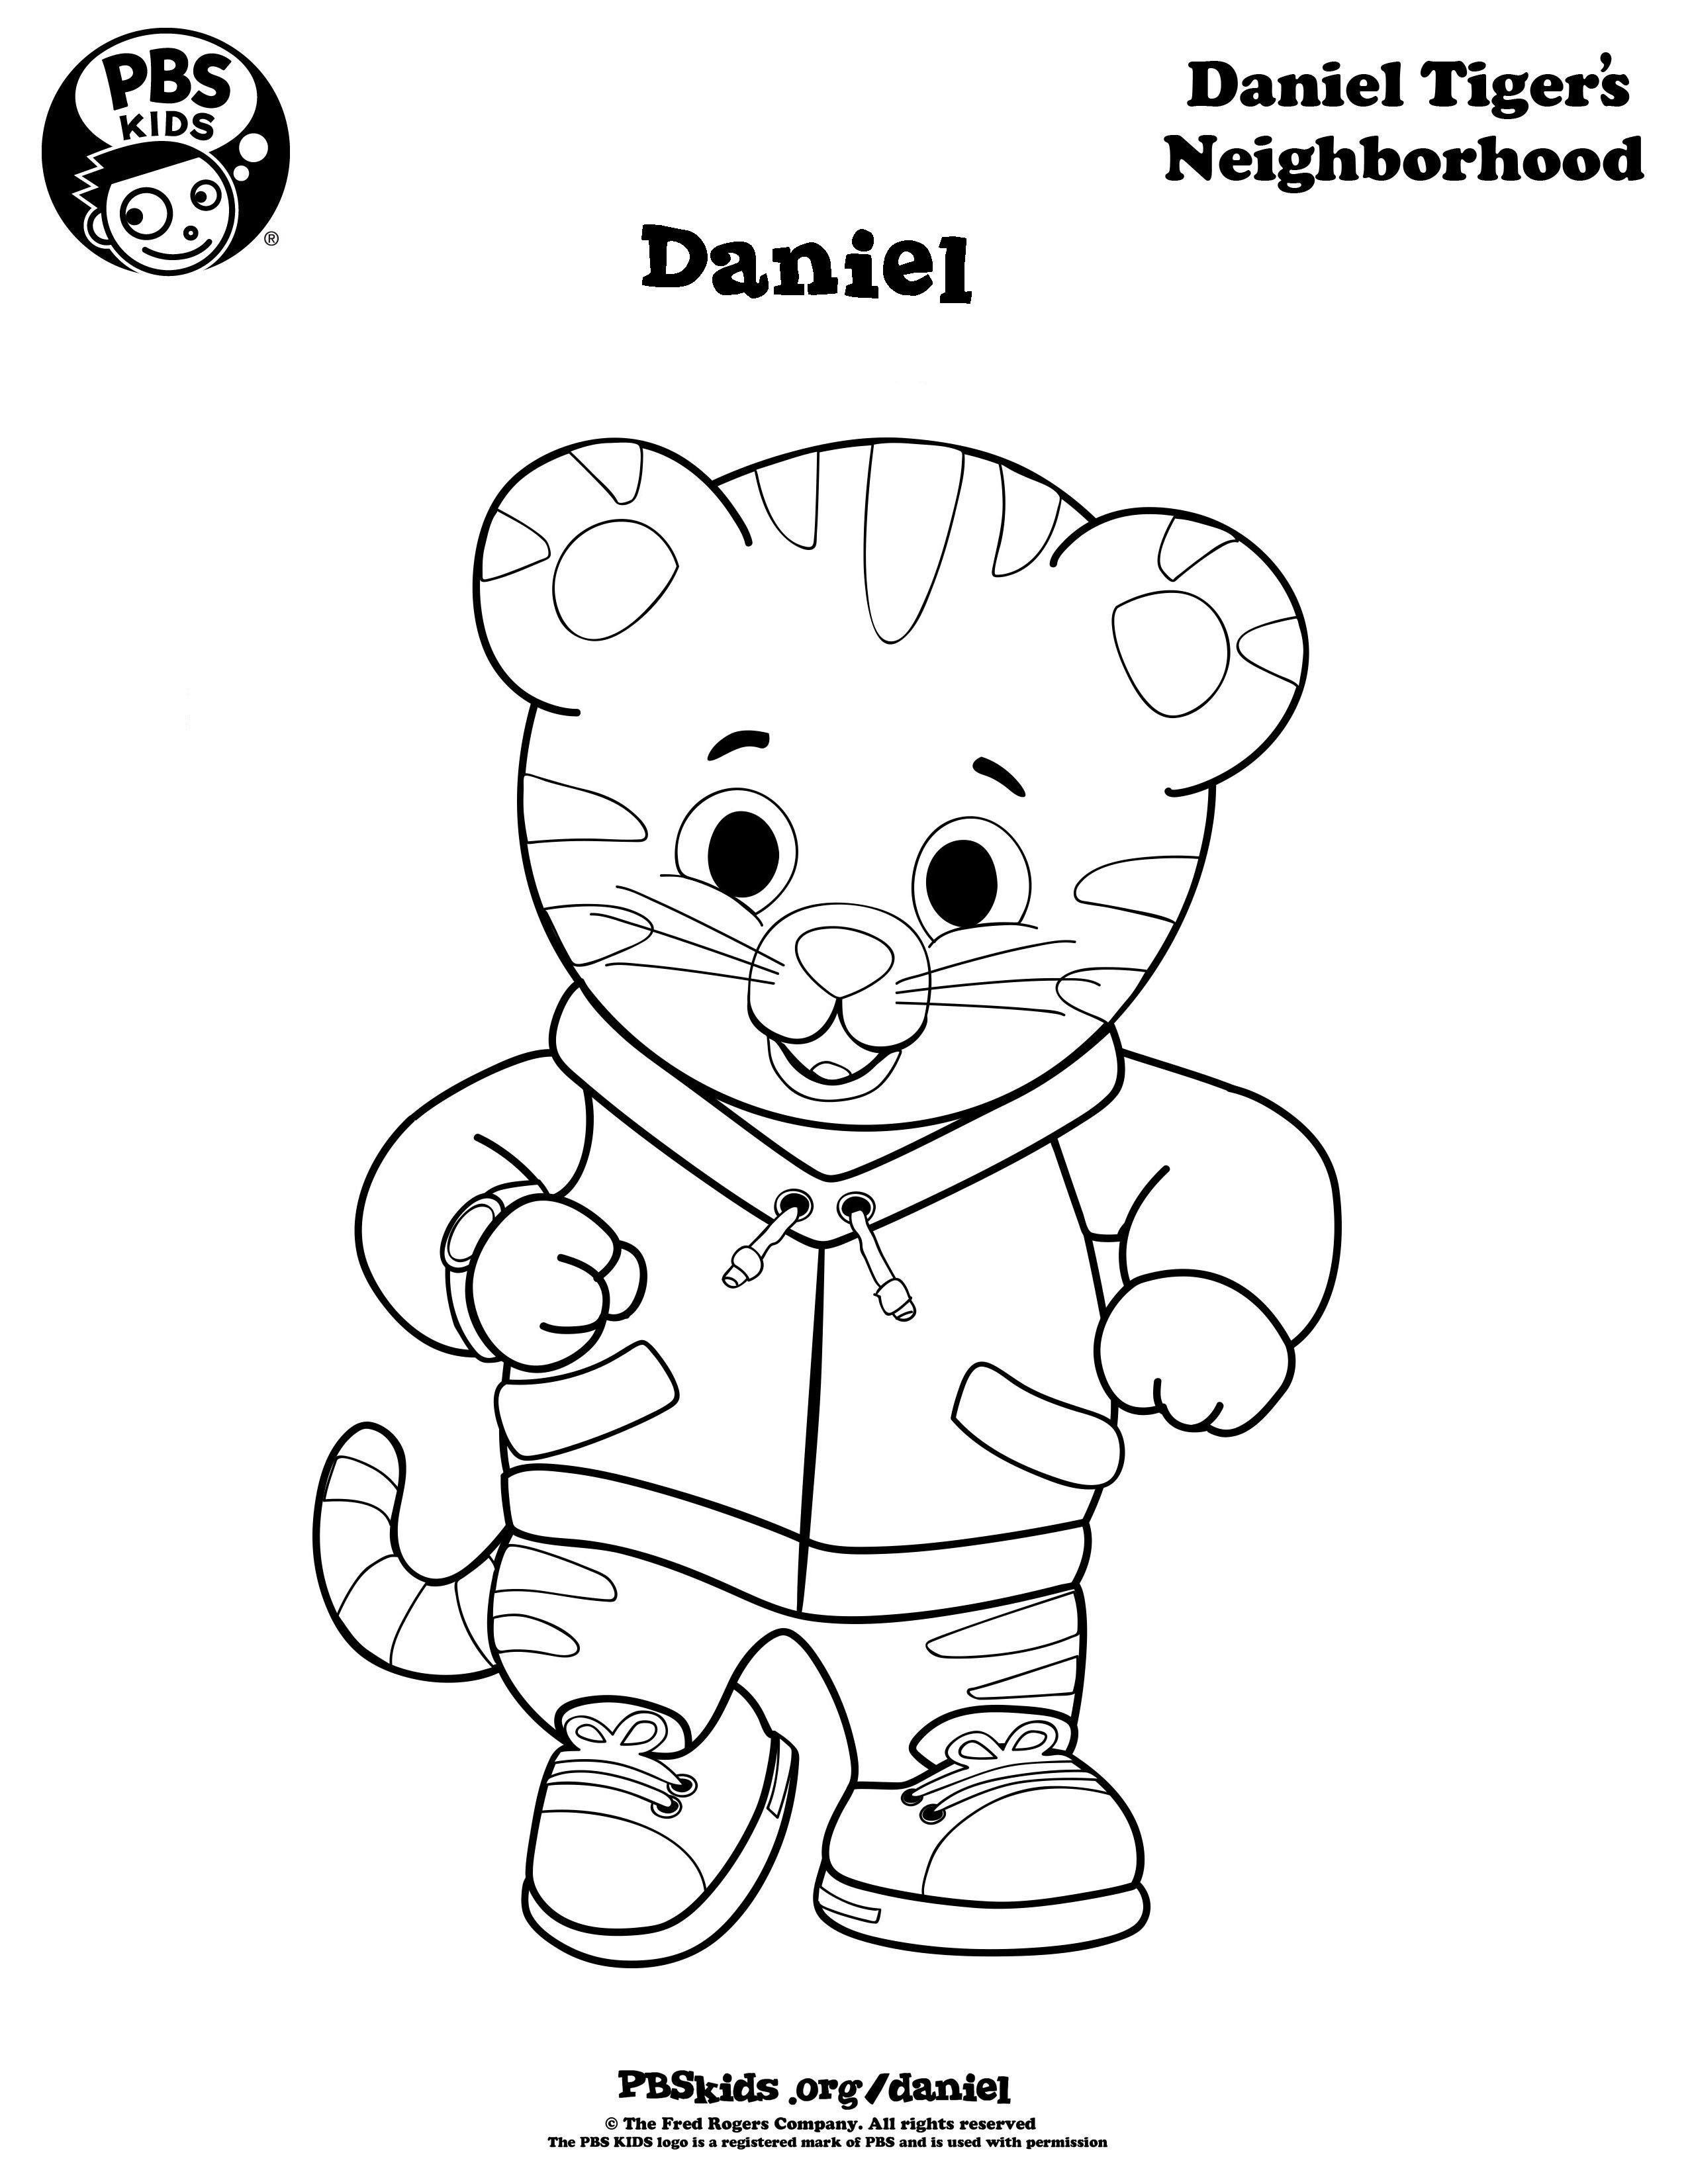 Coloring | Daniel Tiger\'s Neighborhood | PBS KIDS | Crafts for Kids ...